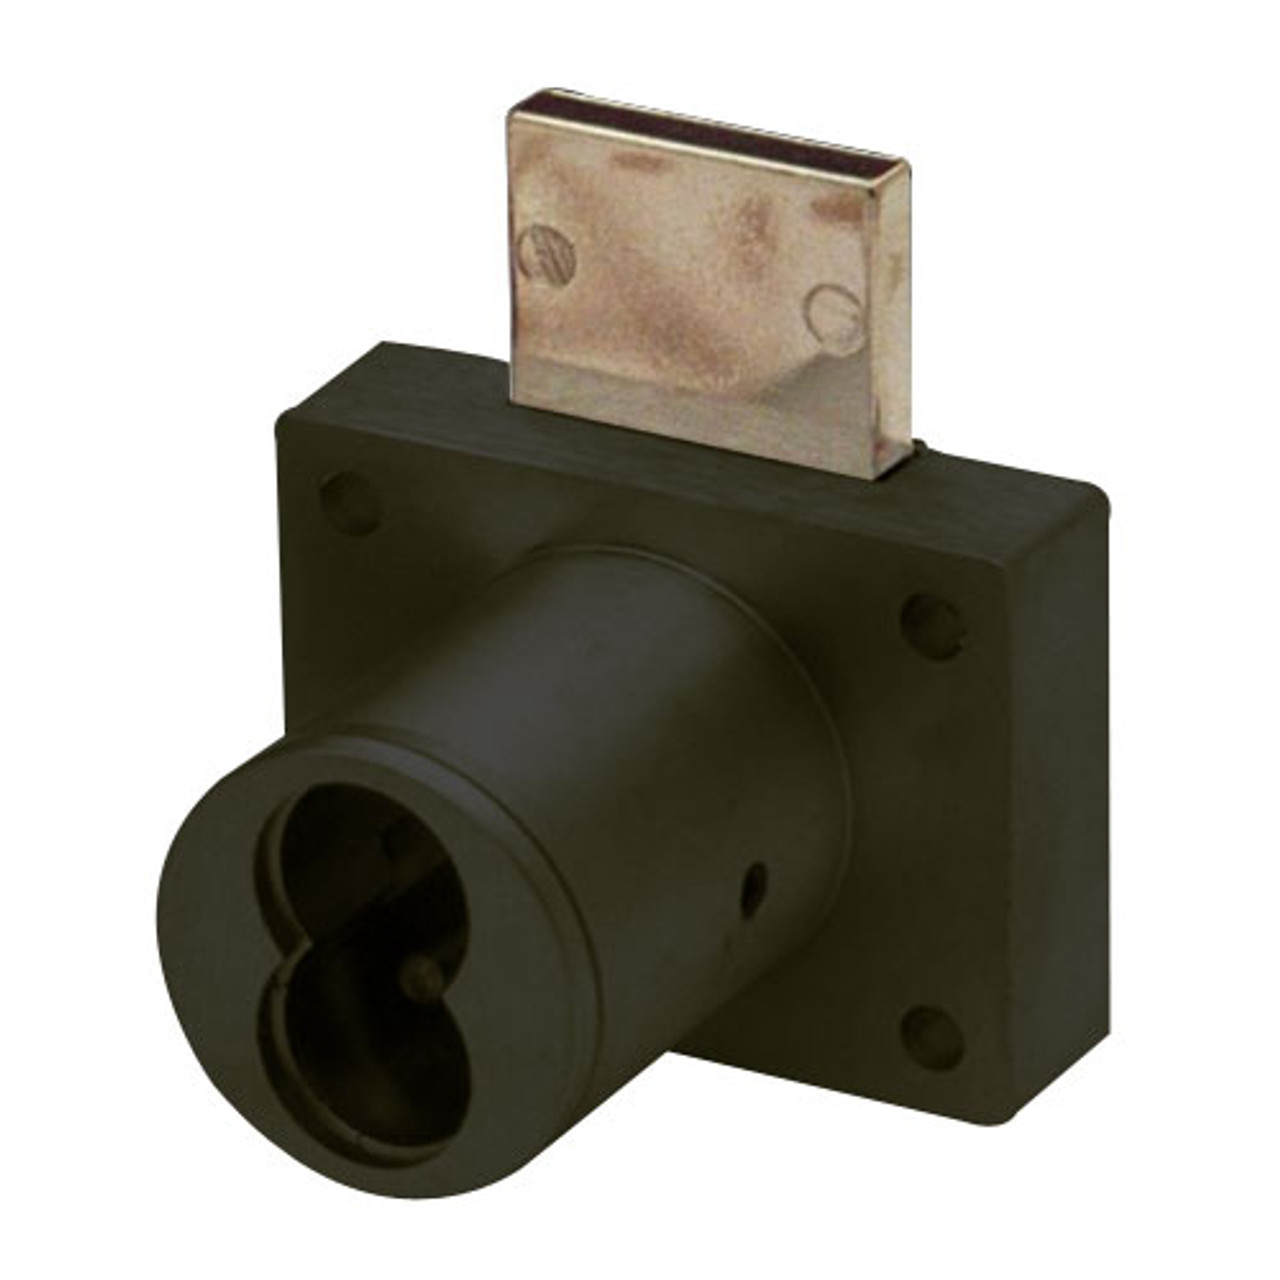 Olympus 721DW-10B Cabinet Drawer Lock in Oil Rubbed Bronze Finish